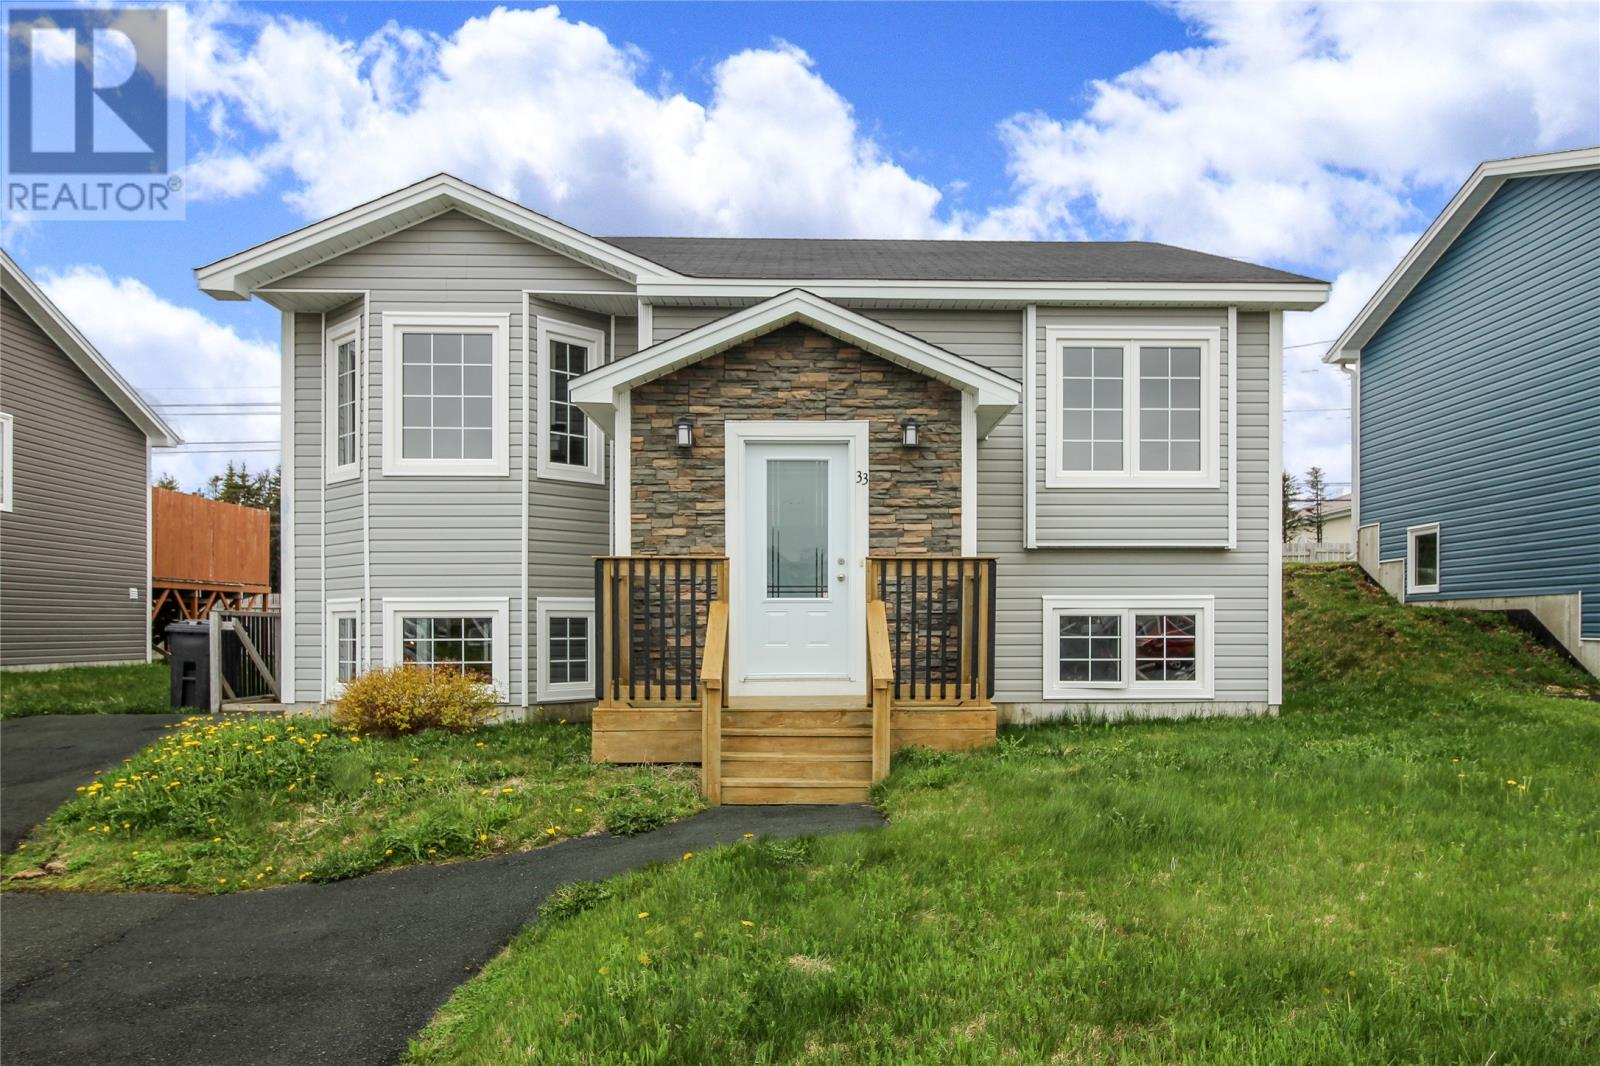 Removed: 33 Finlaystone Drive, Mount Pearl, NL - Removed on 2019-06-27 05:33:11